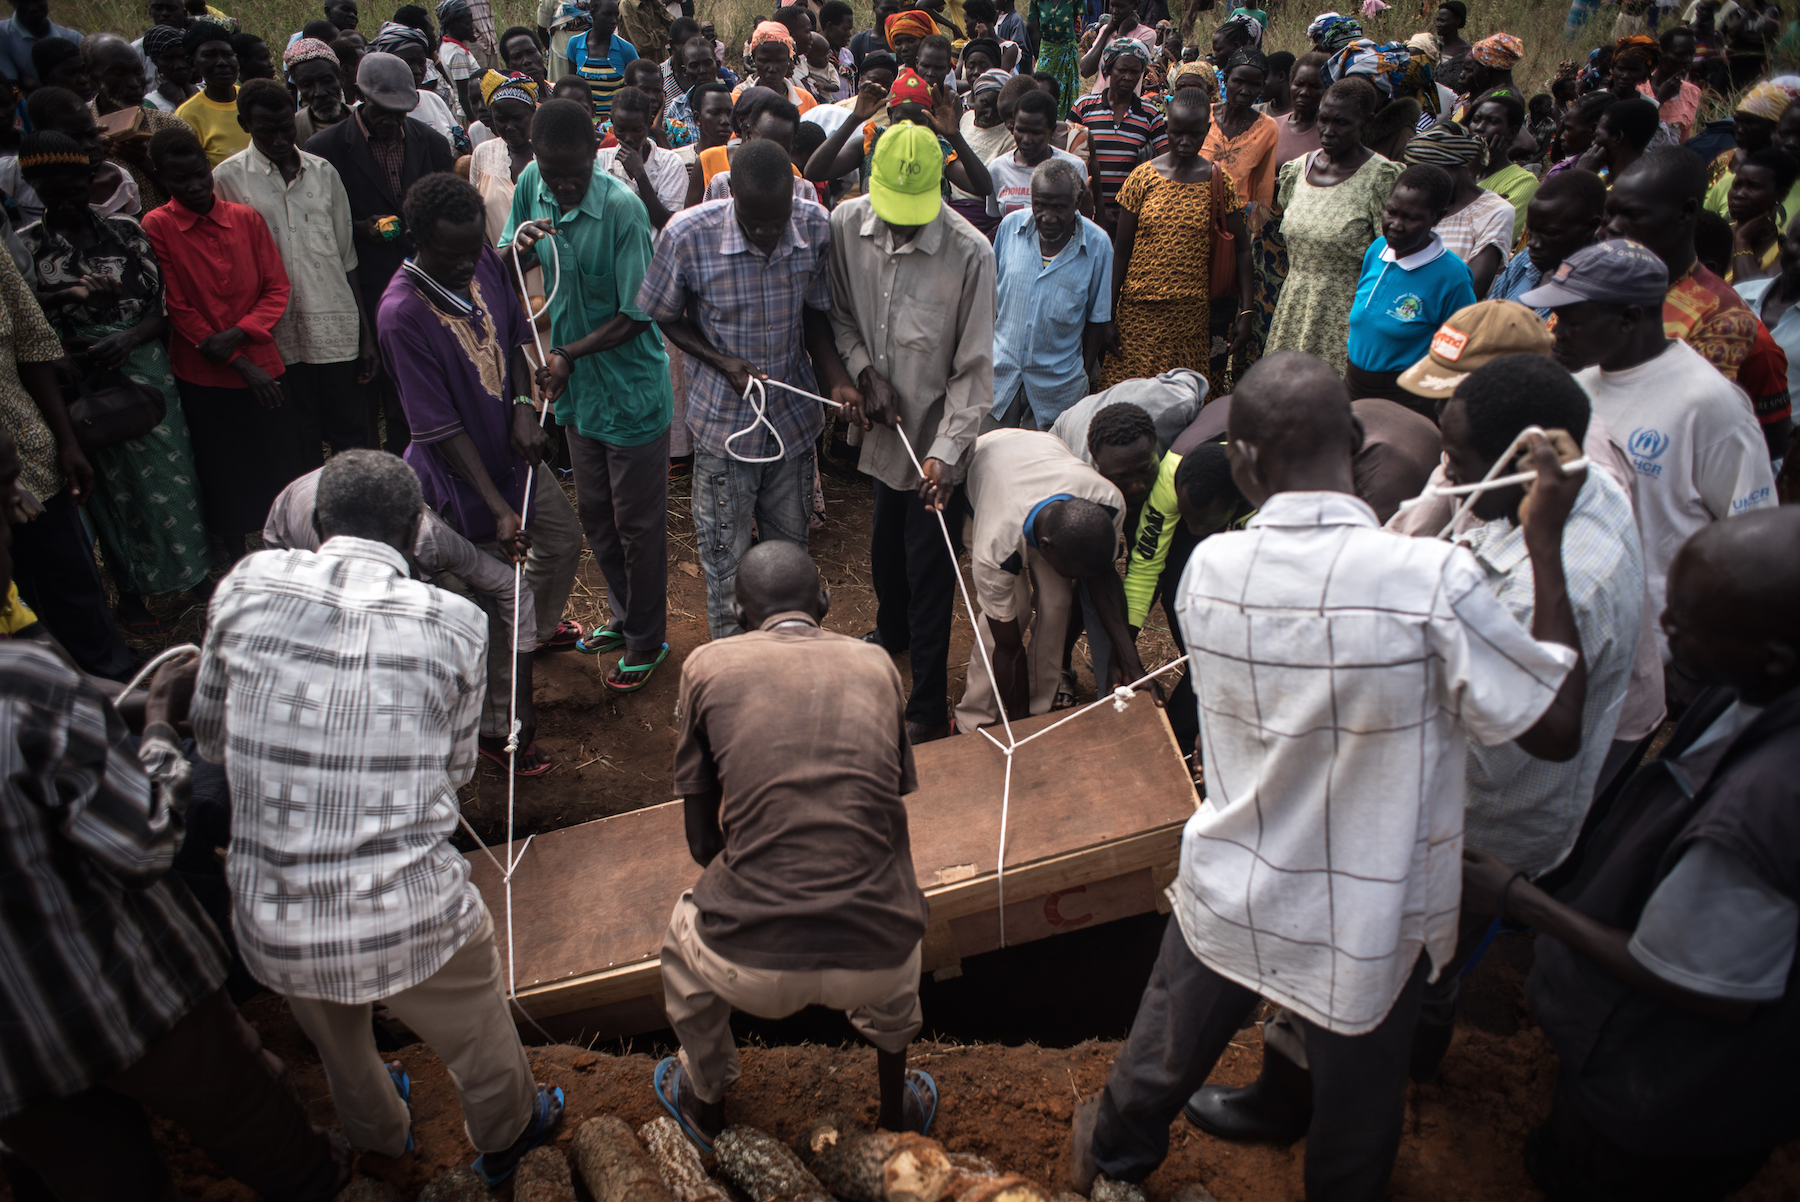 The casket containing the body of Duku Evans, who was killed November 3 amid fighting between government troops and rebels in Logo displaced persons camp in Kajo Keji, South Sudan, is lowered into a grave on the Ugandan border, Nov. 5, 2017.